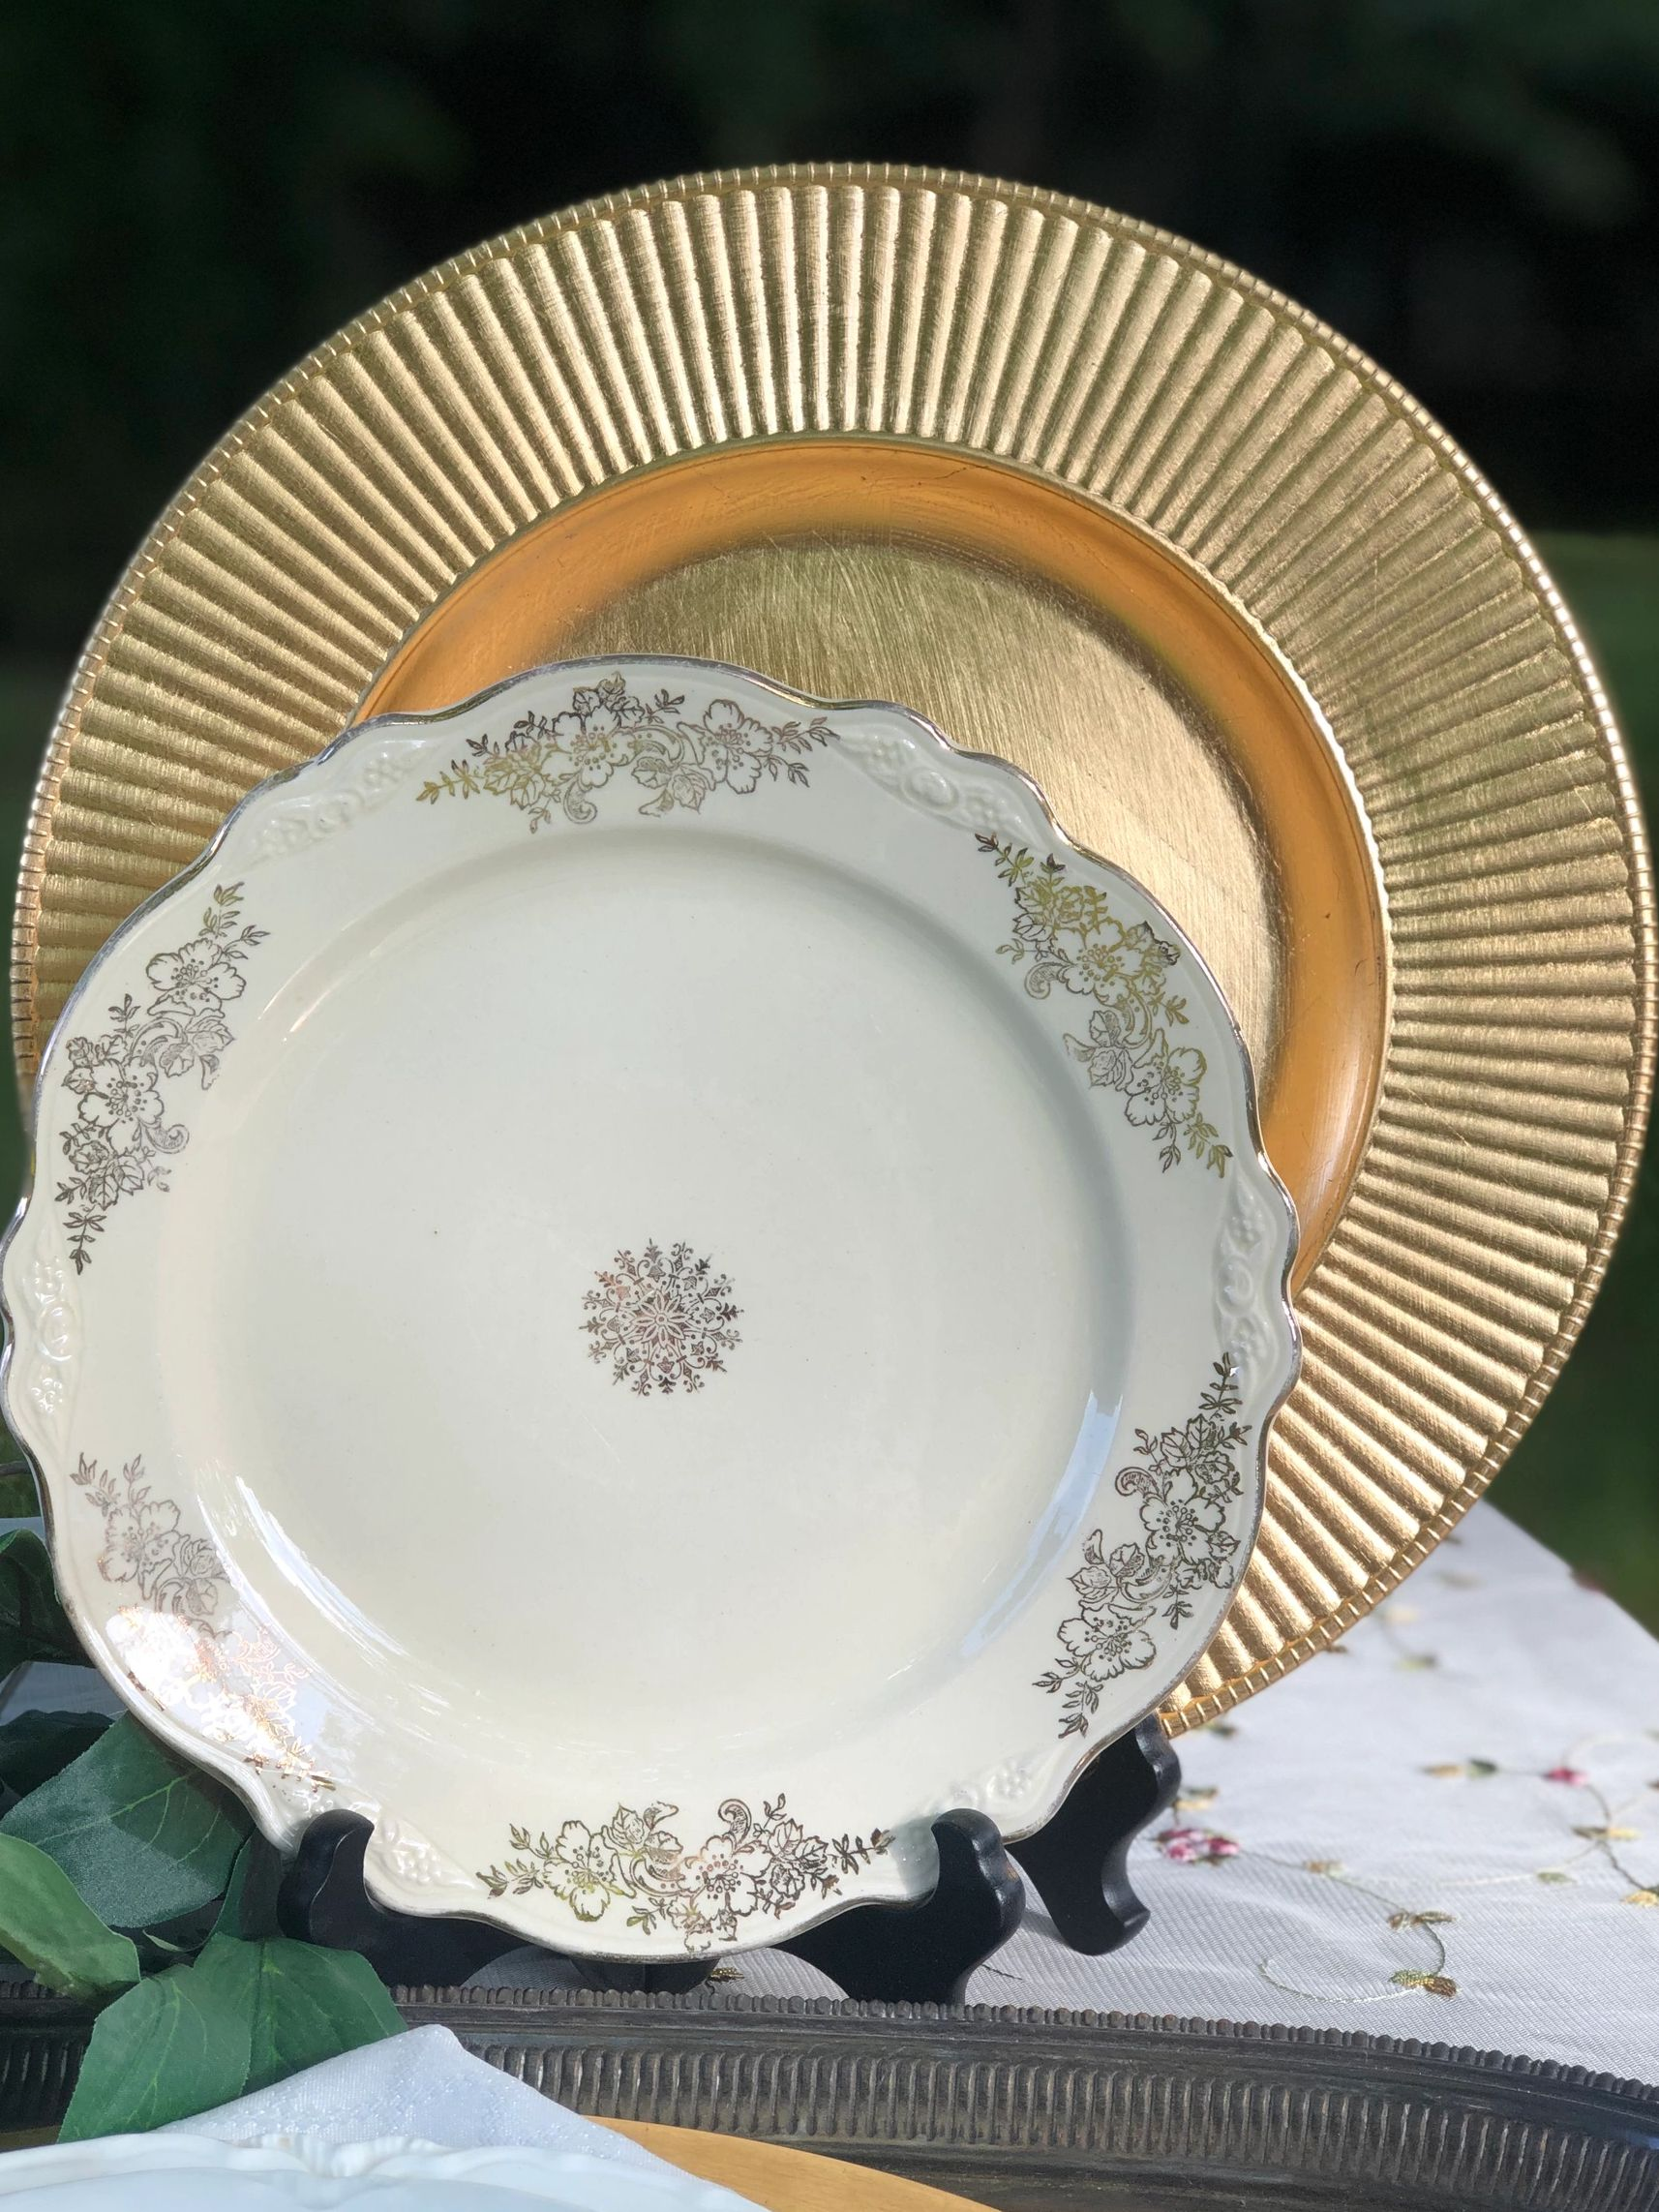 gold charger and antique dinner plate.